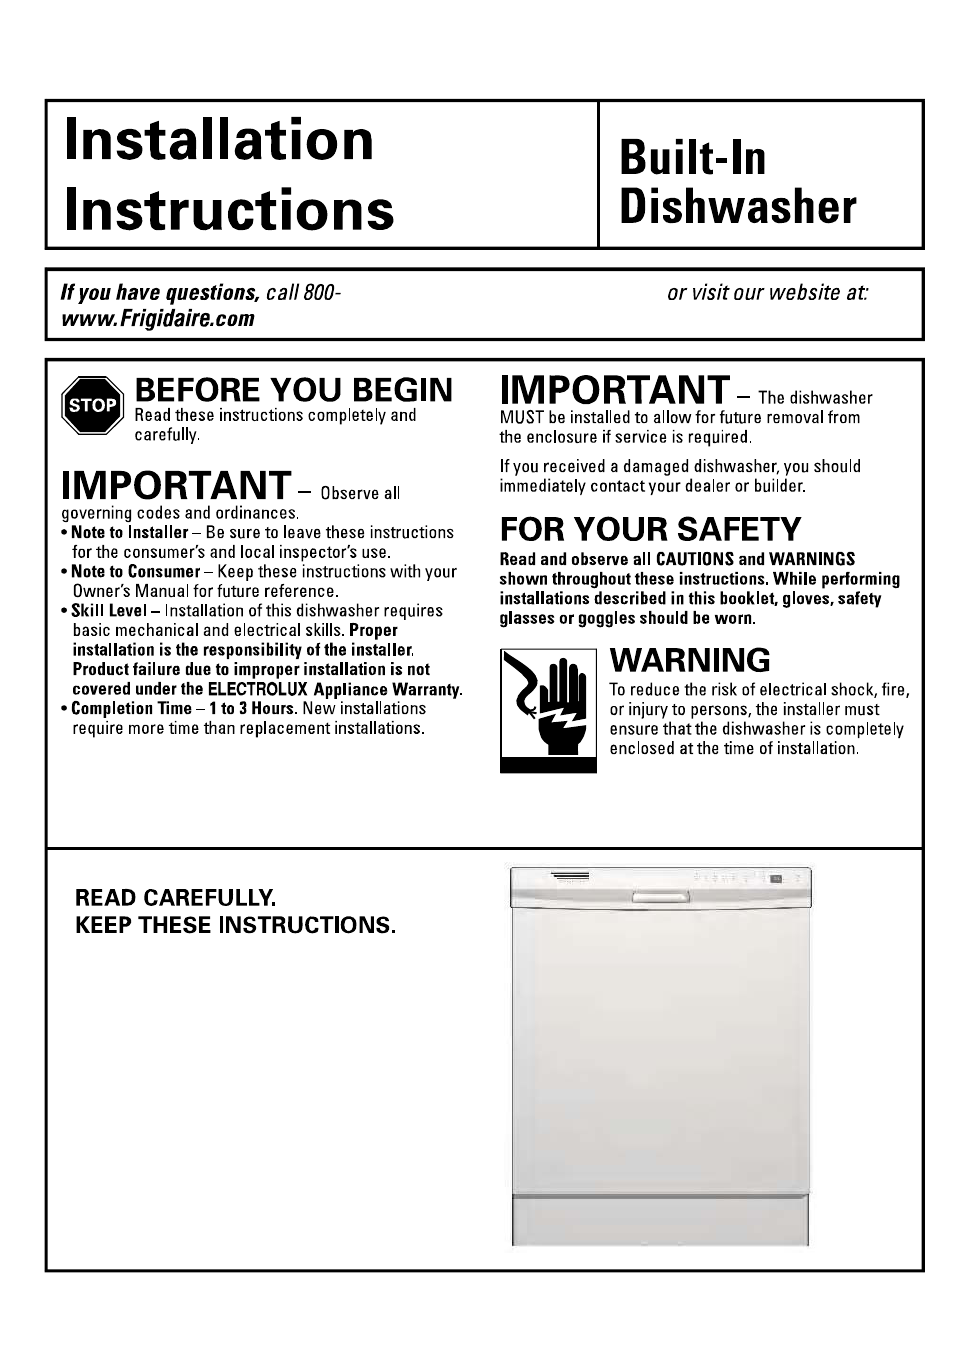 Frigidaire Fdb2410his Installation Instructions Free Pdf Download